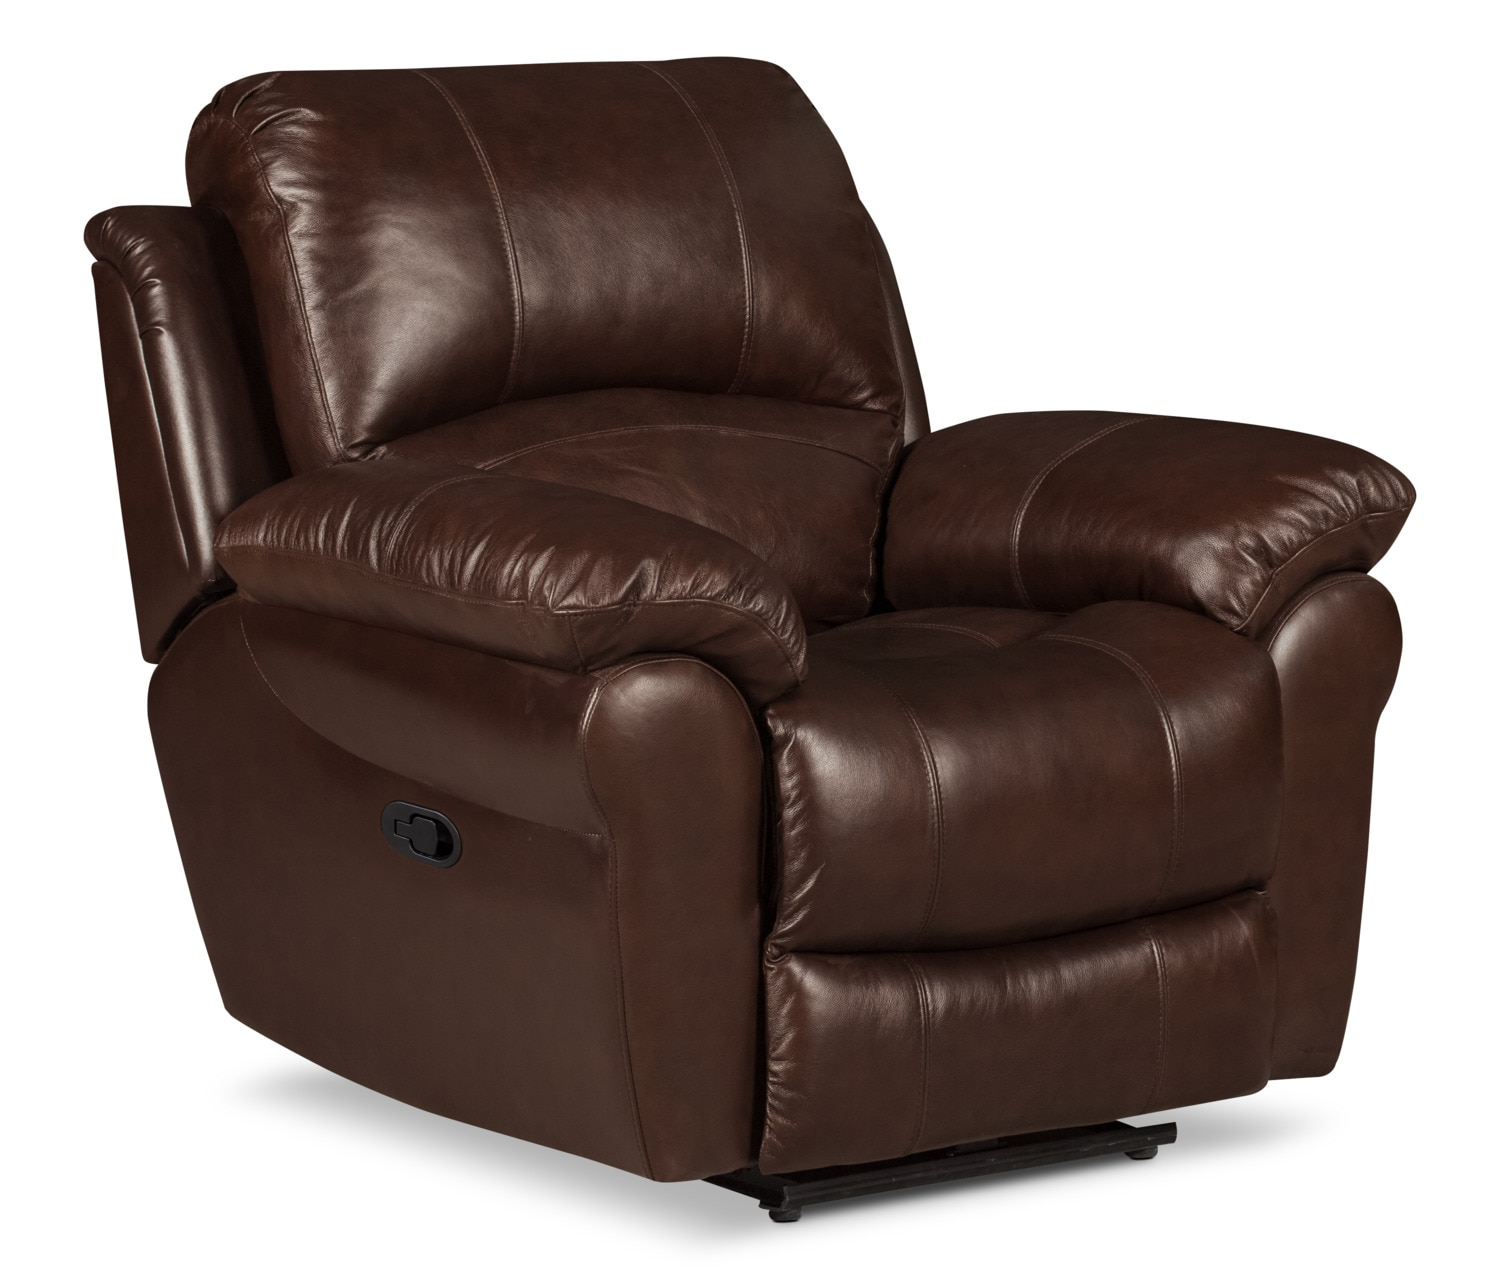 Kobe Genuine Leather Reclining Chair – Brown